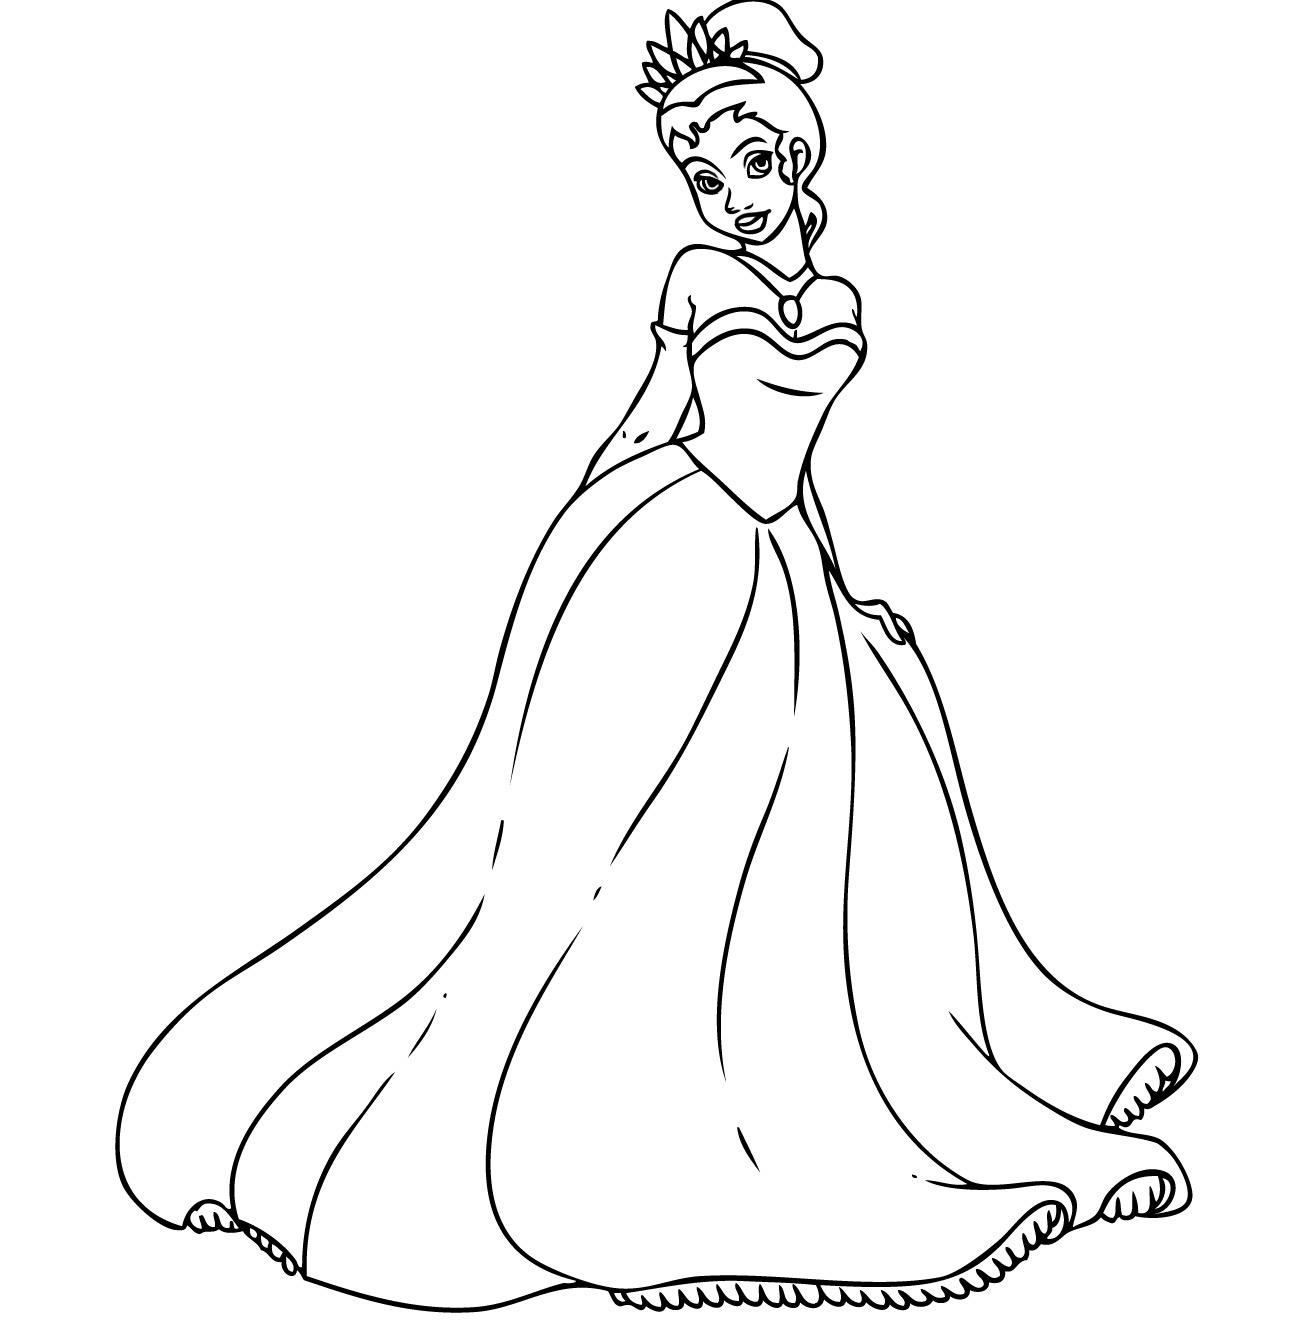 Free Printable Princess Tiana Coloring Pages For Kids Printable Coloring Pages Princess